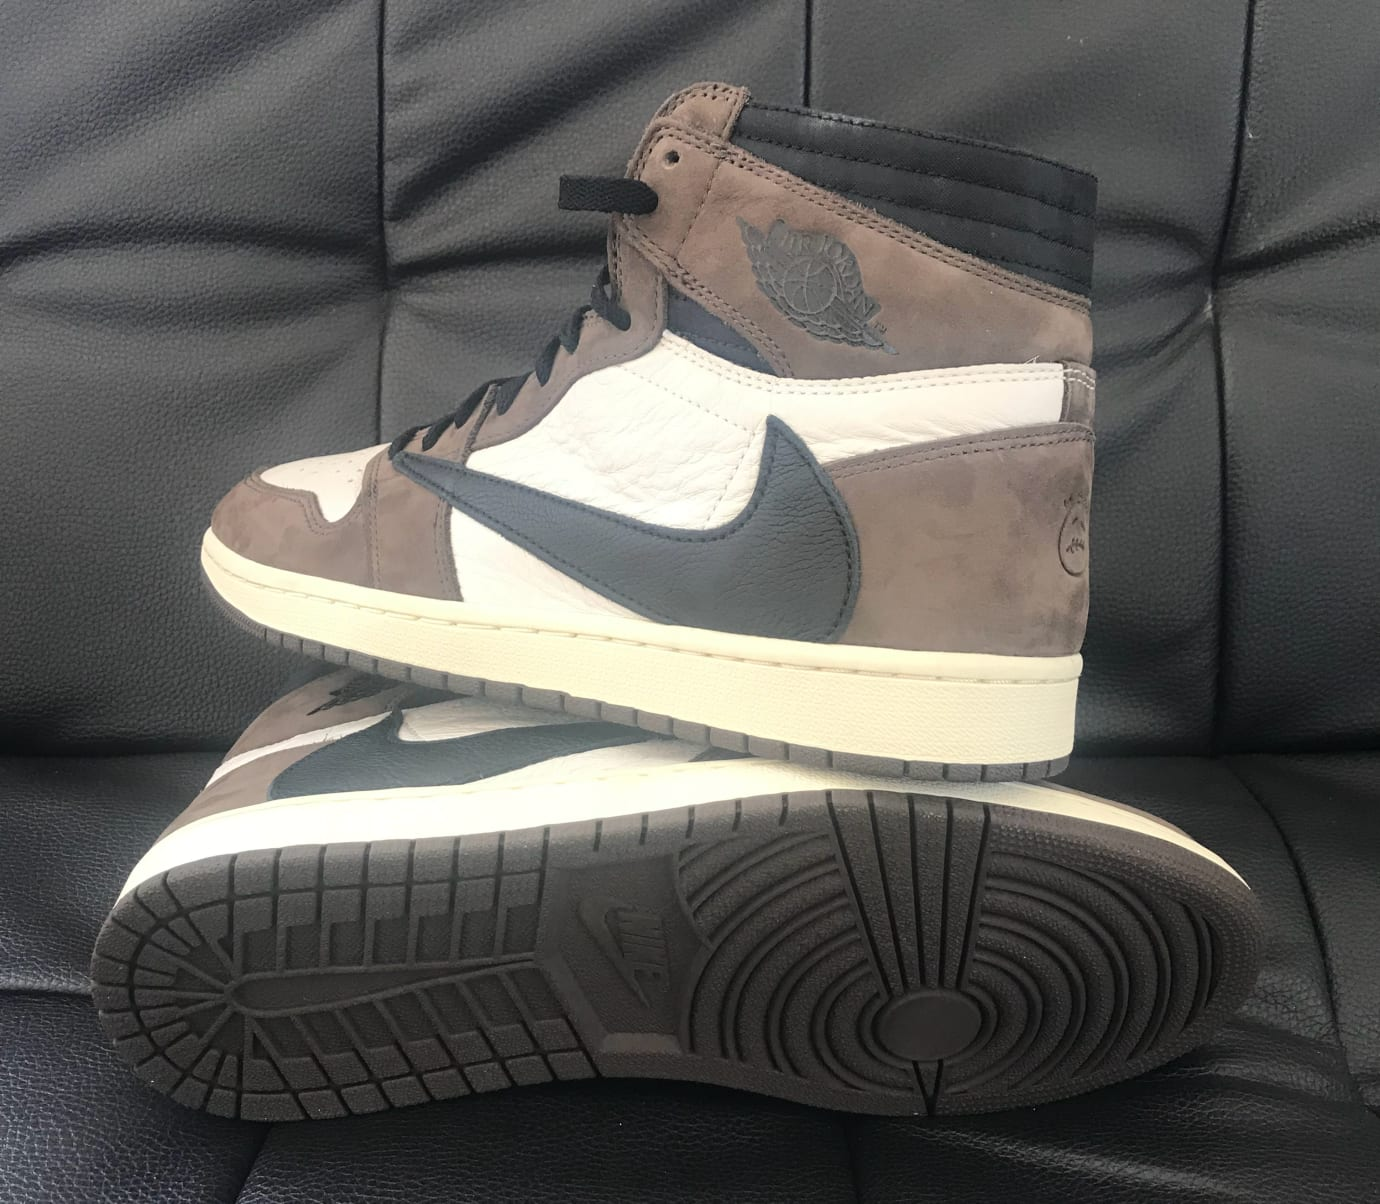 2f5c428fca019 Image via Weibo.cn Travis Scott x Air Jordan 1 High OG TS SP CD4487-100  (Lateral and